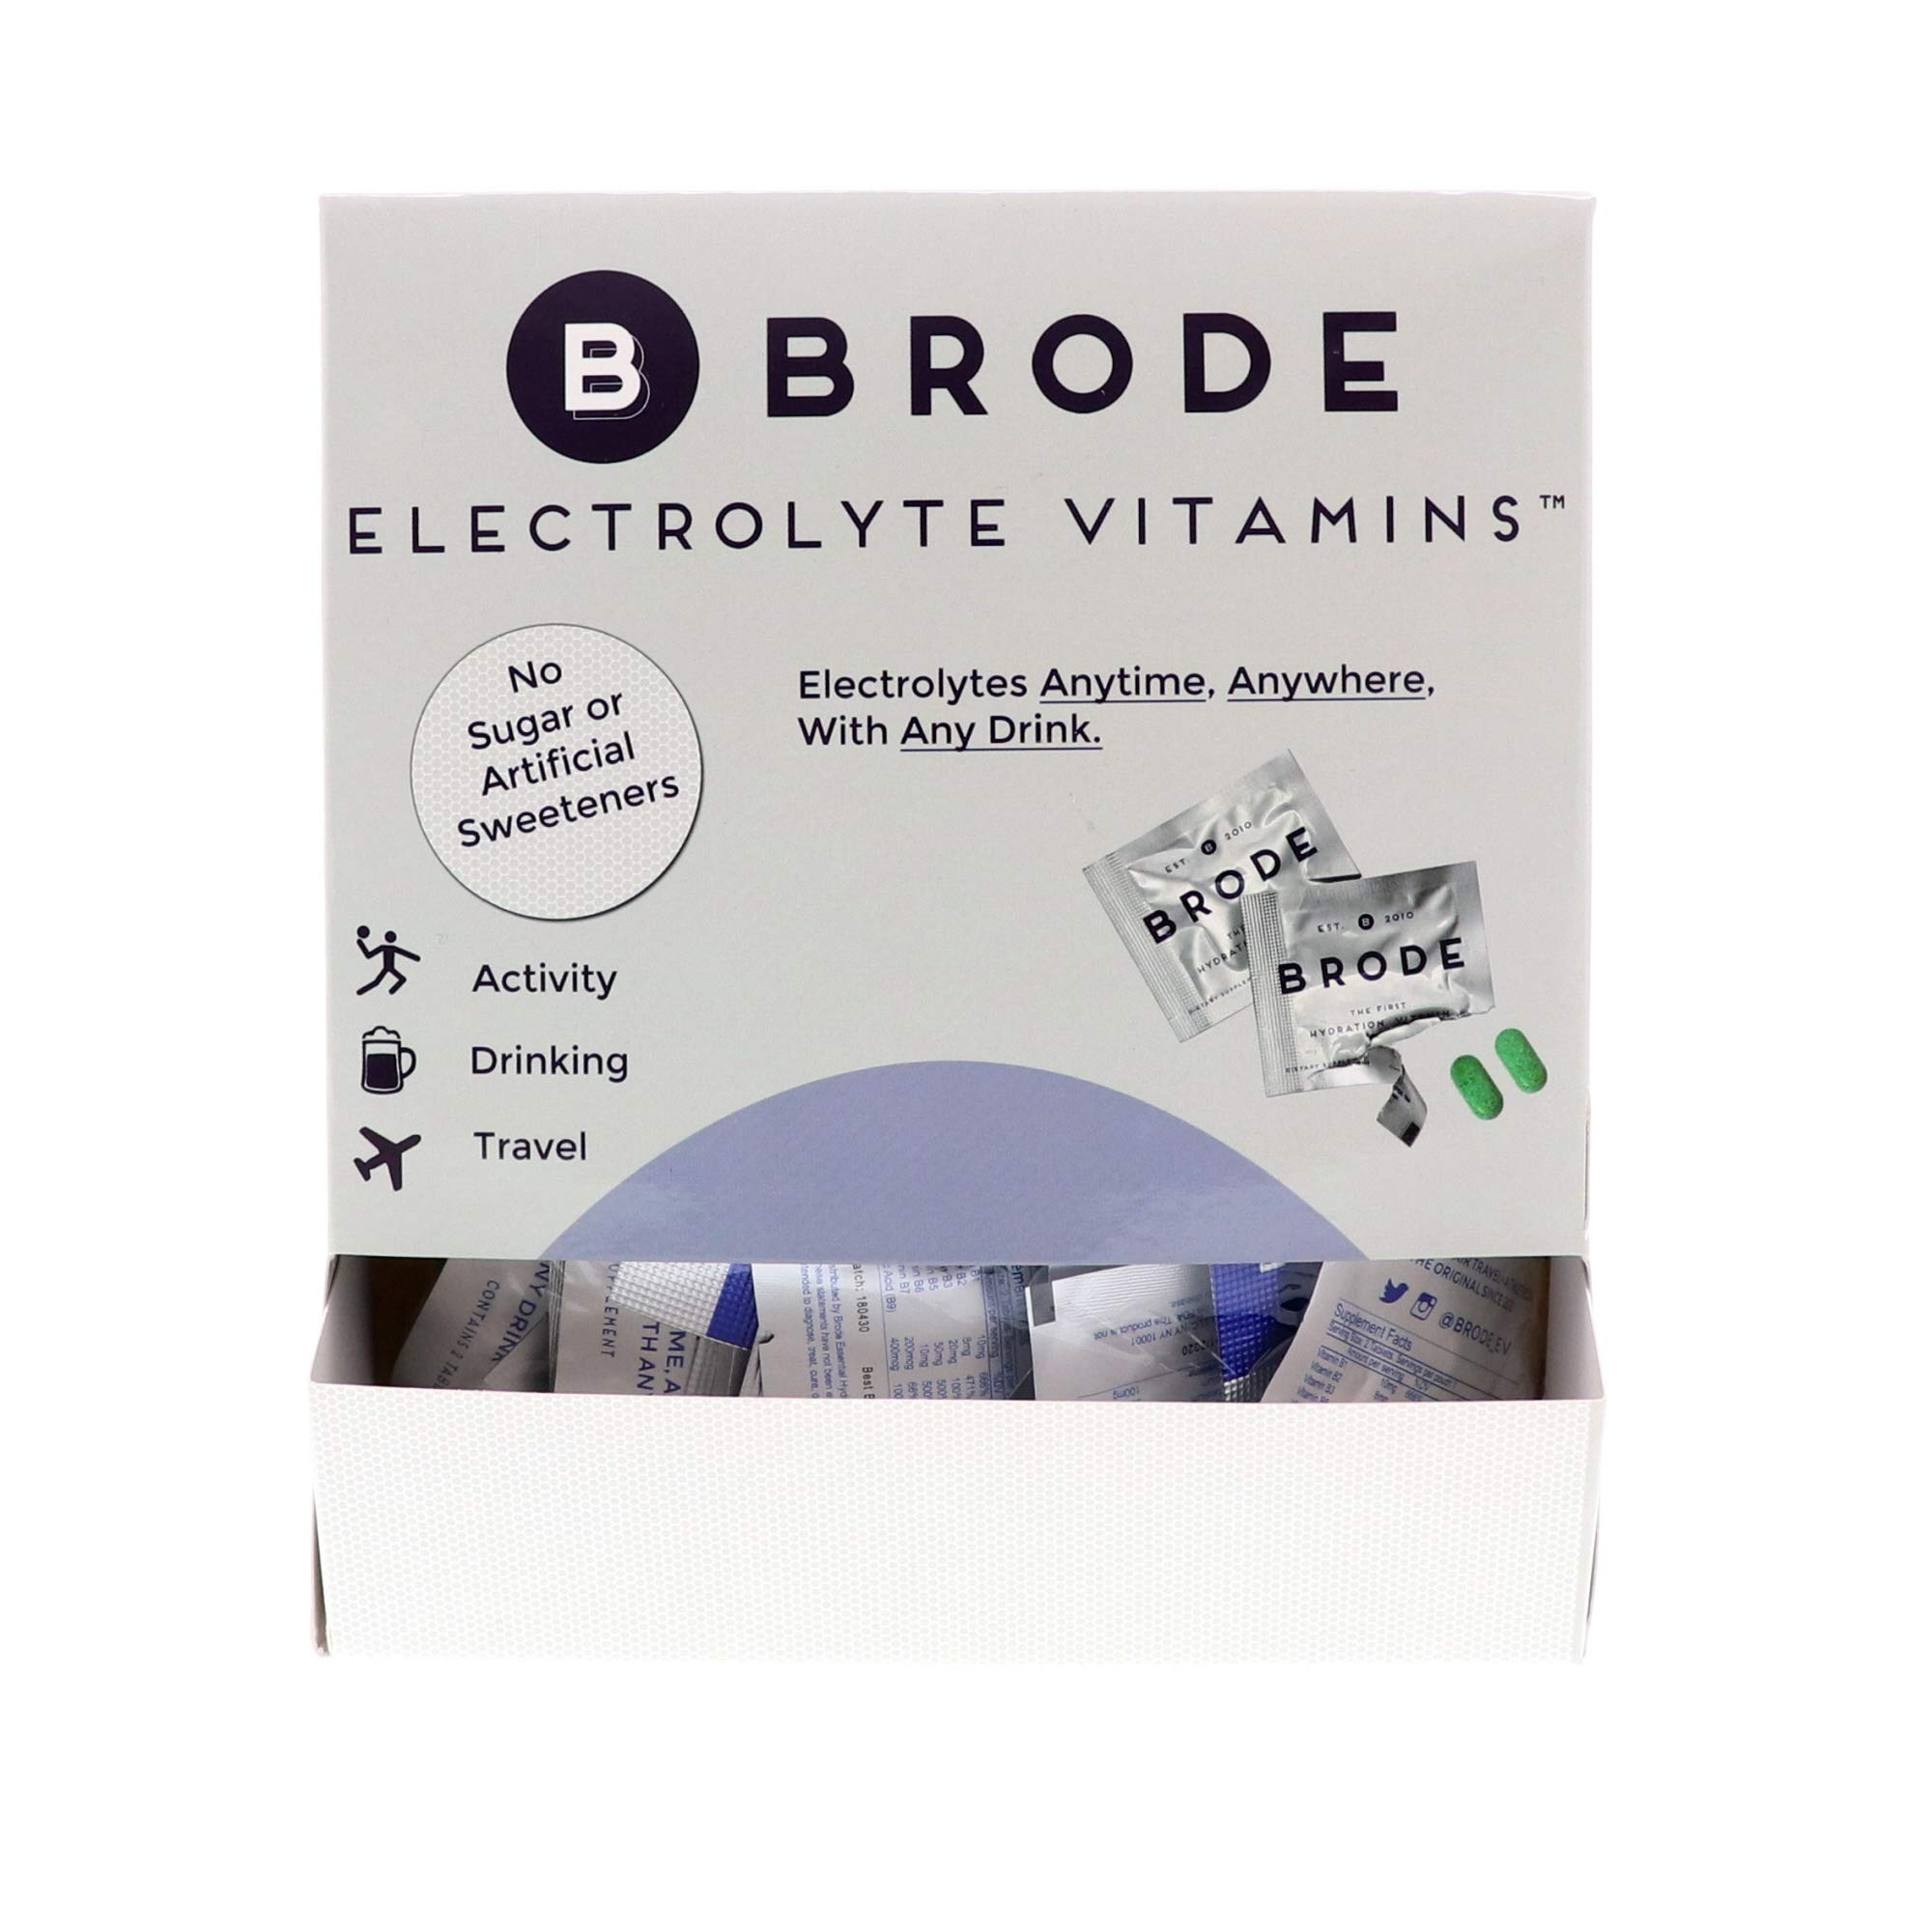 Brode Electrolyte Vitamin - Portable Zero-Sugar Electrolyte Tablets - for Sports, Hangovers, Jet Lag, 5 Essential Electrolytes + 9 Vitamins 100-Pack by Brode (Image #1)